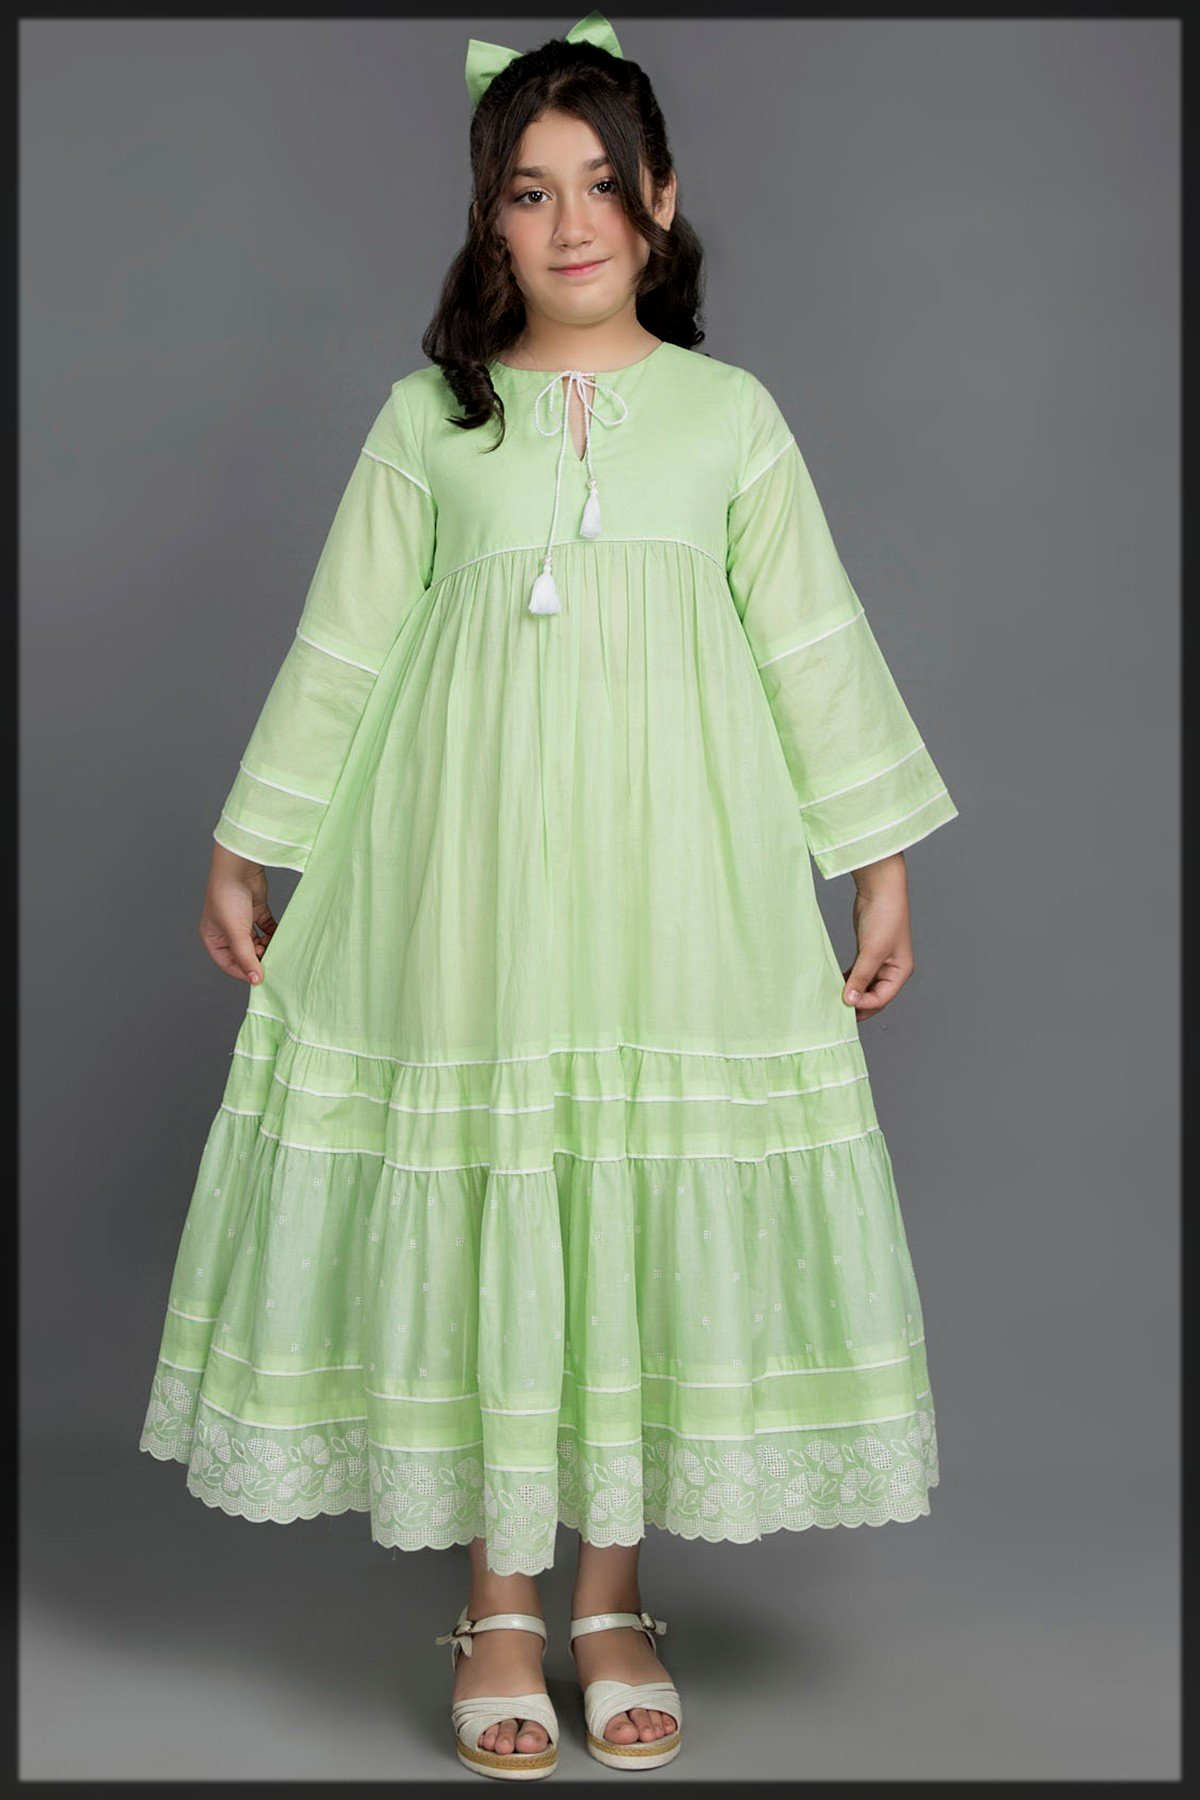 appealing frock for young girls by kayseria